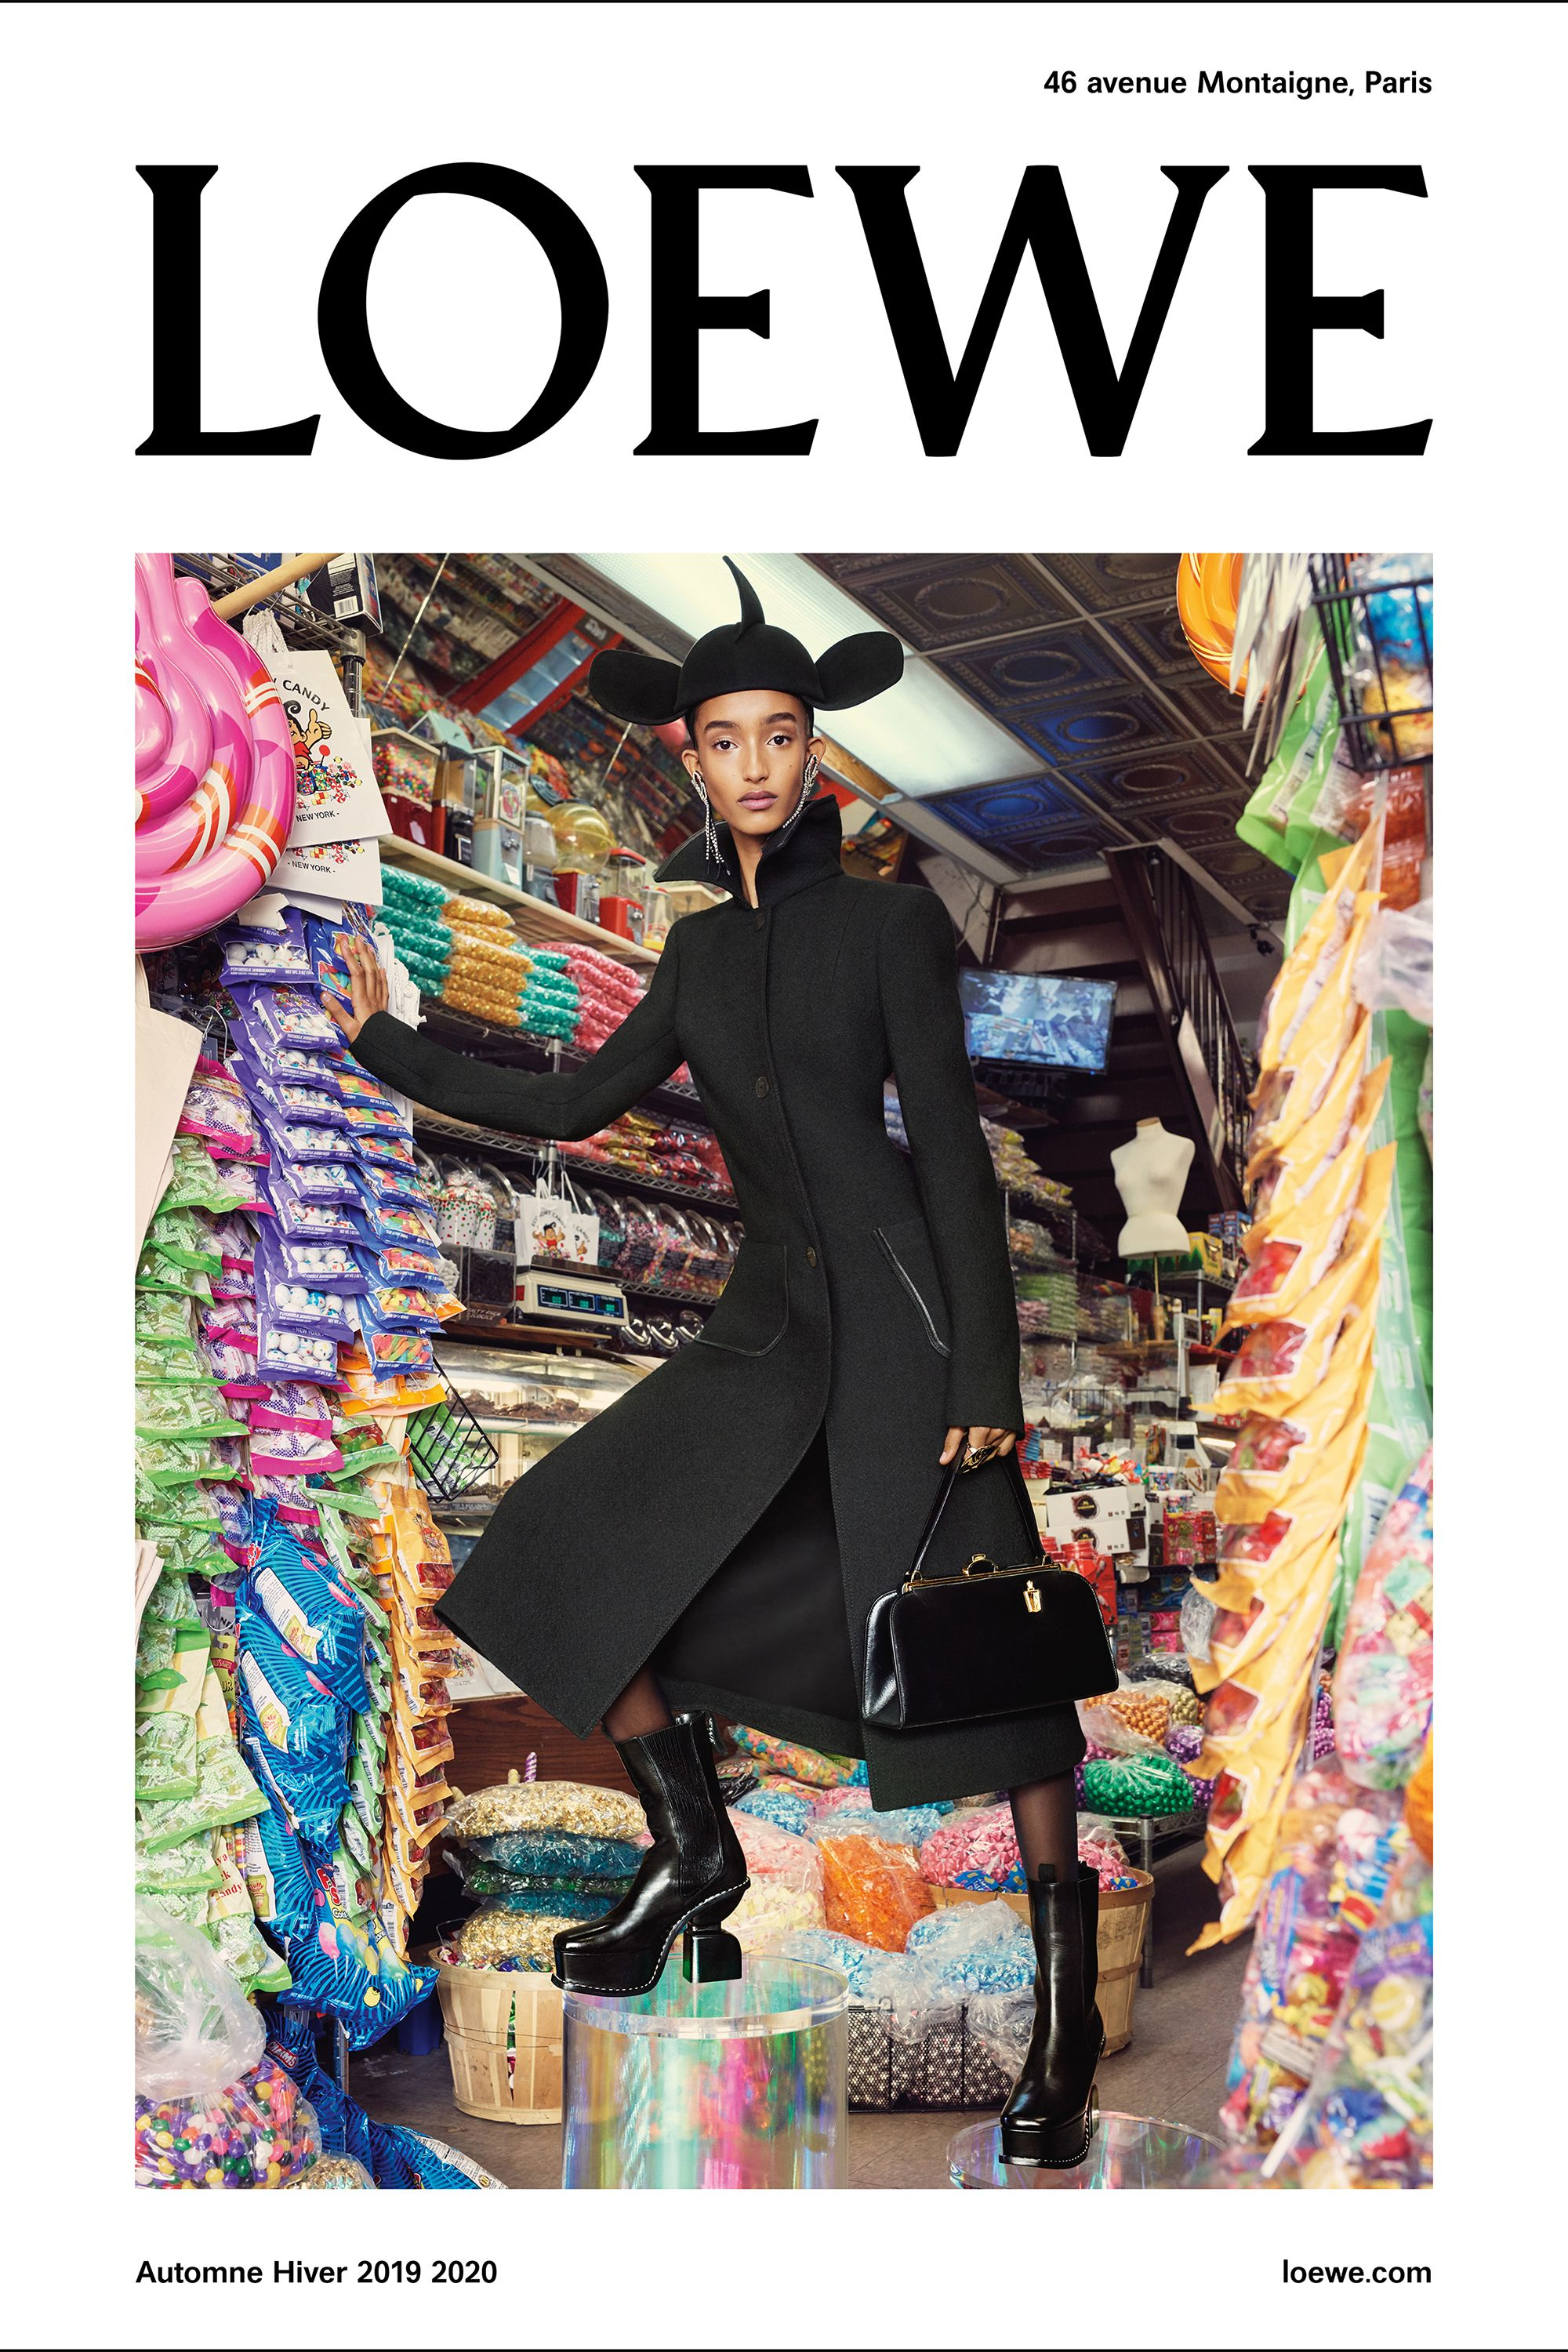 Best Ad Campaigns 2020 Steven Meisel Just Photographed The Most Stunning LOEWE Campaign